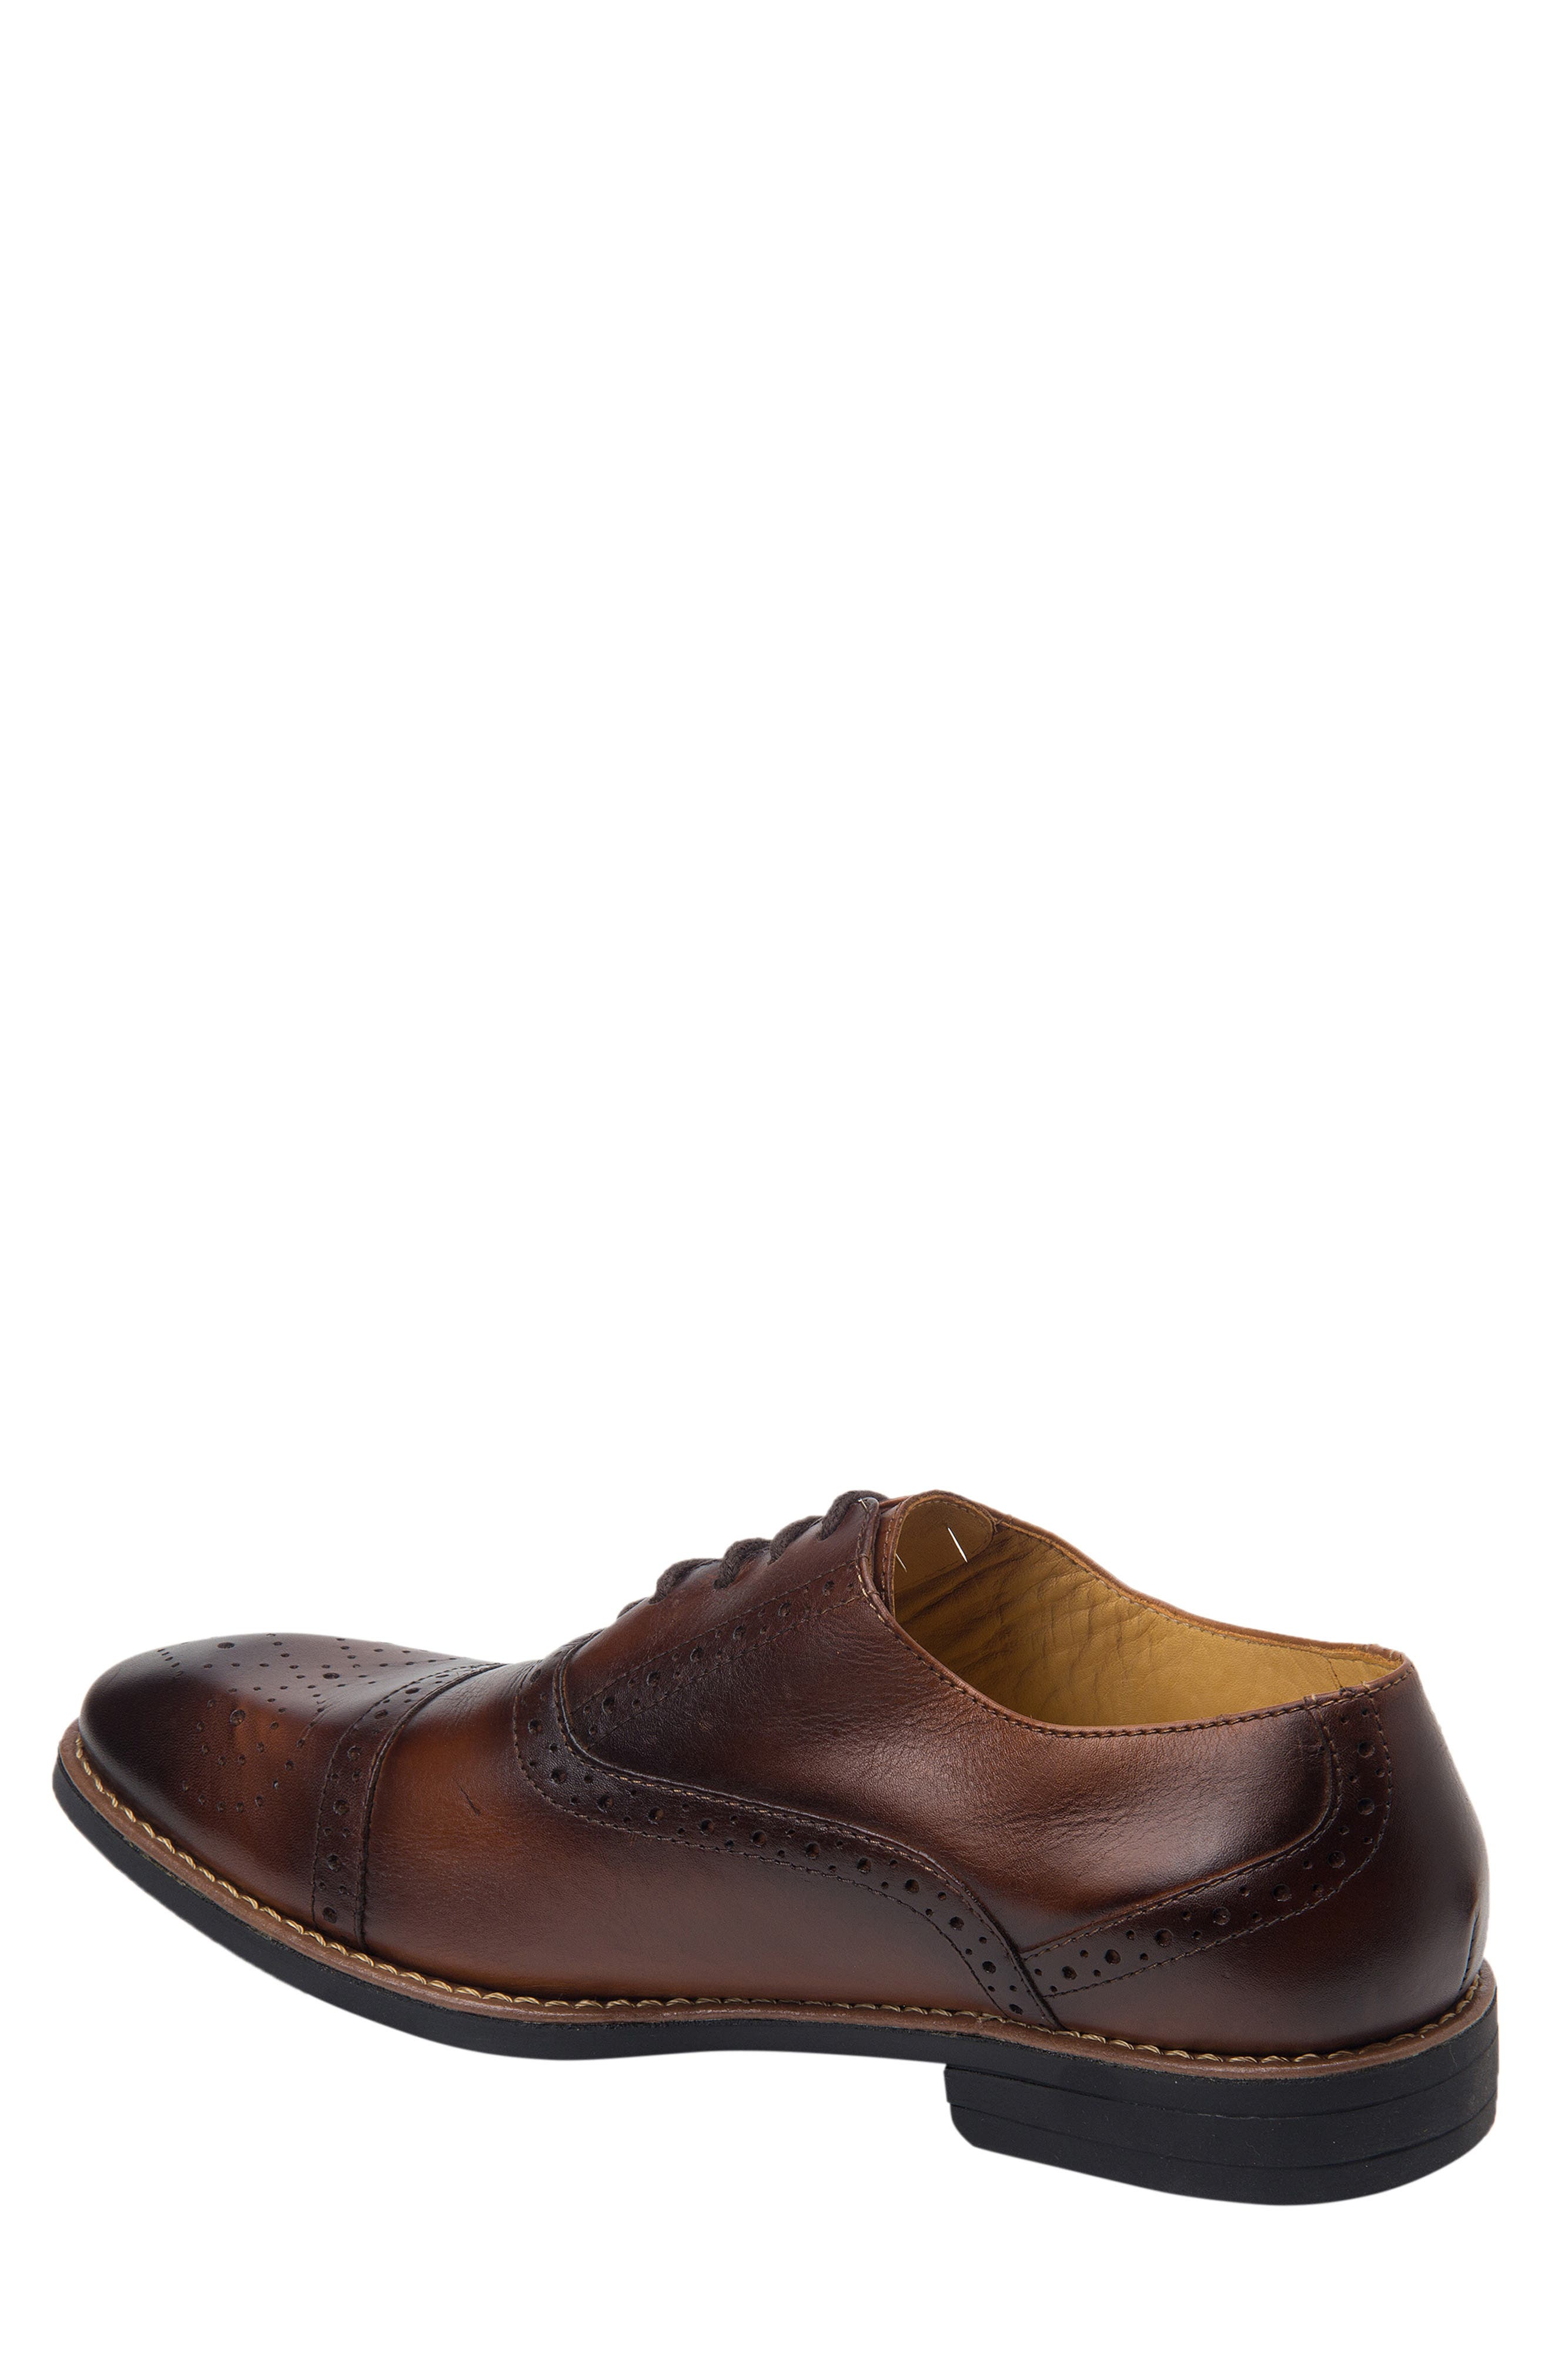 SANDRO MOSCOLONI, Murali Cap Toe Oxford, Alternate thumbnail 2, color, BROWN LEATHER